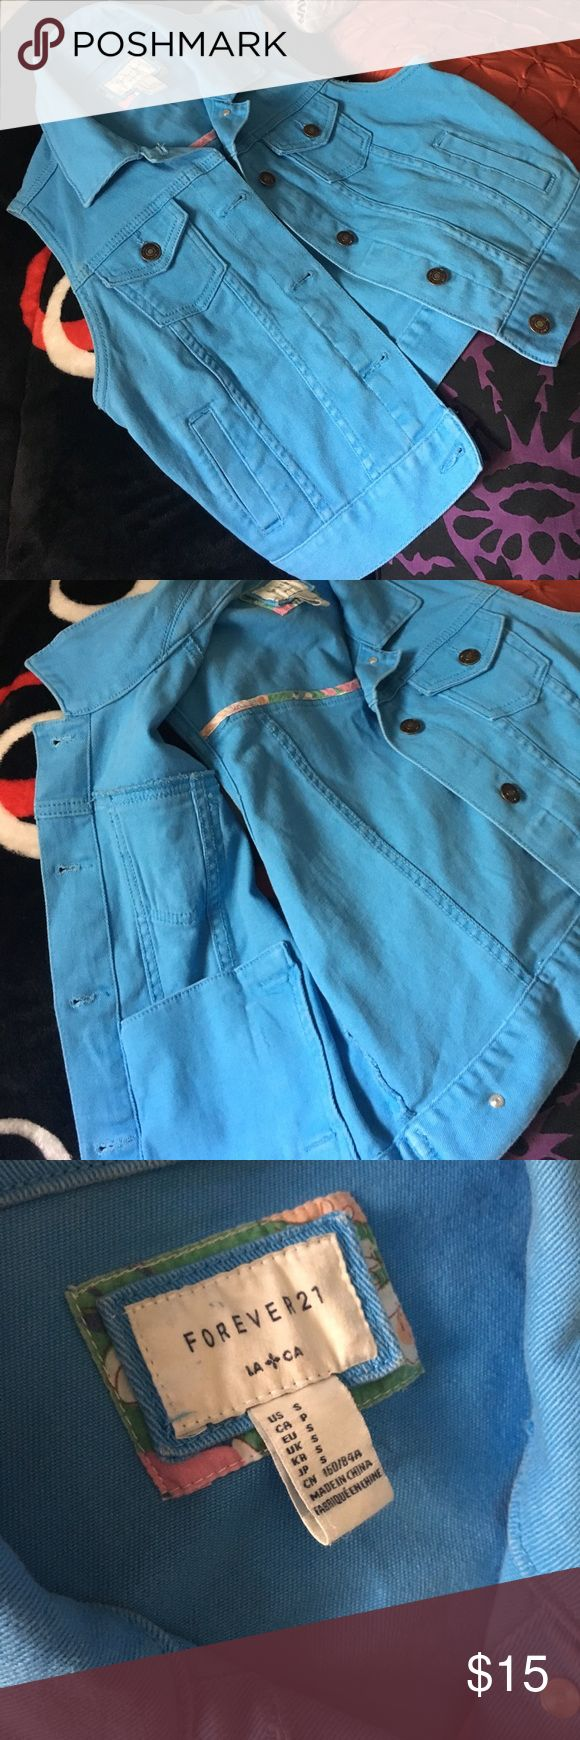 Blue Jean Vest Jean best perfect for summer! Size small. No flaws. Not a true jean vest, it's colored blue with a faded look. Forever 21 Jackets & Coats Vests